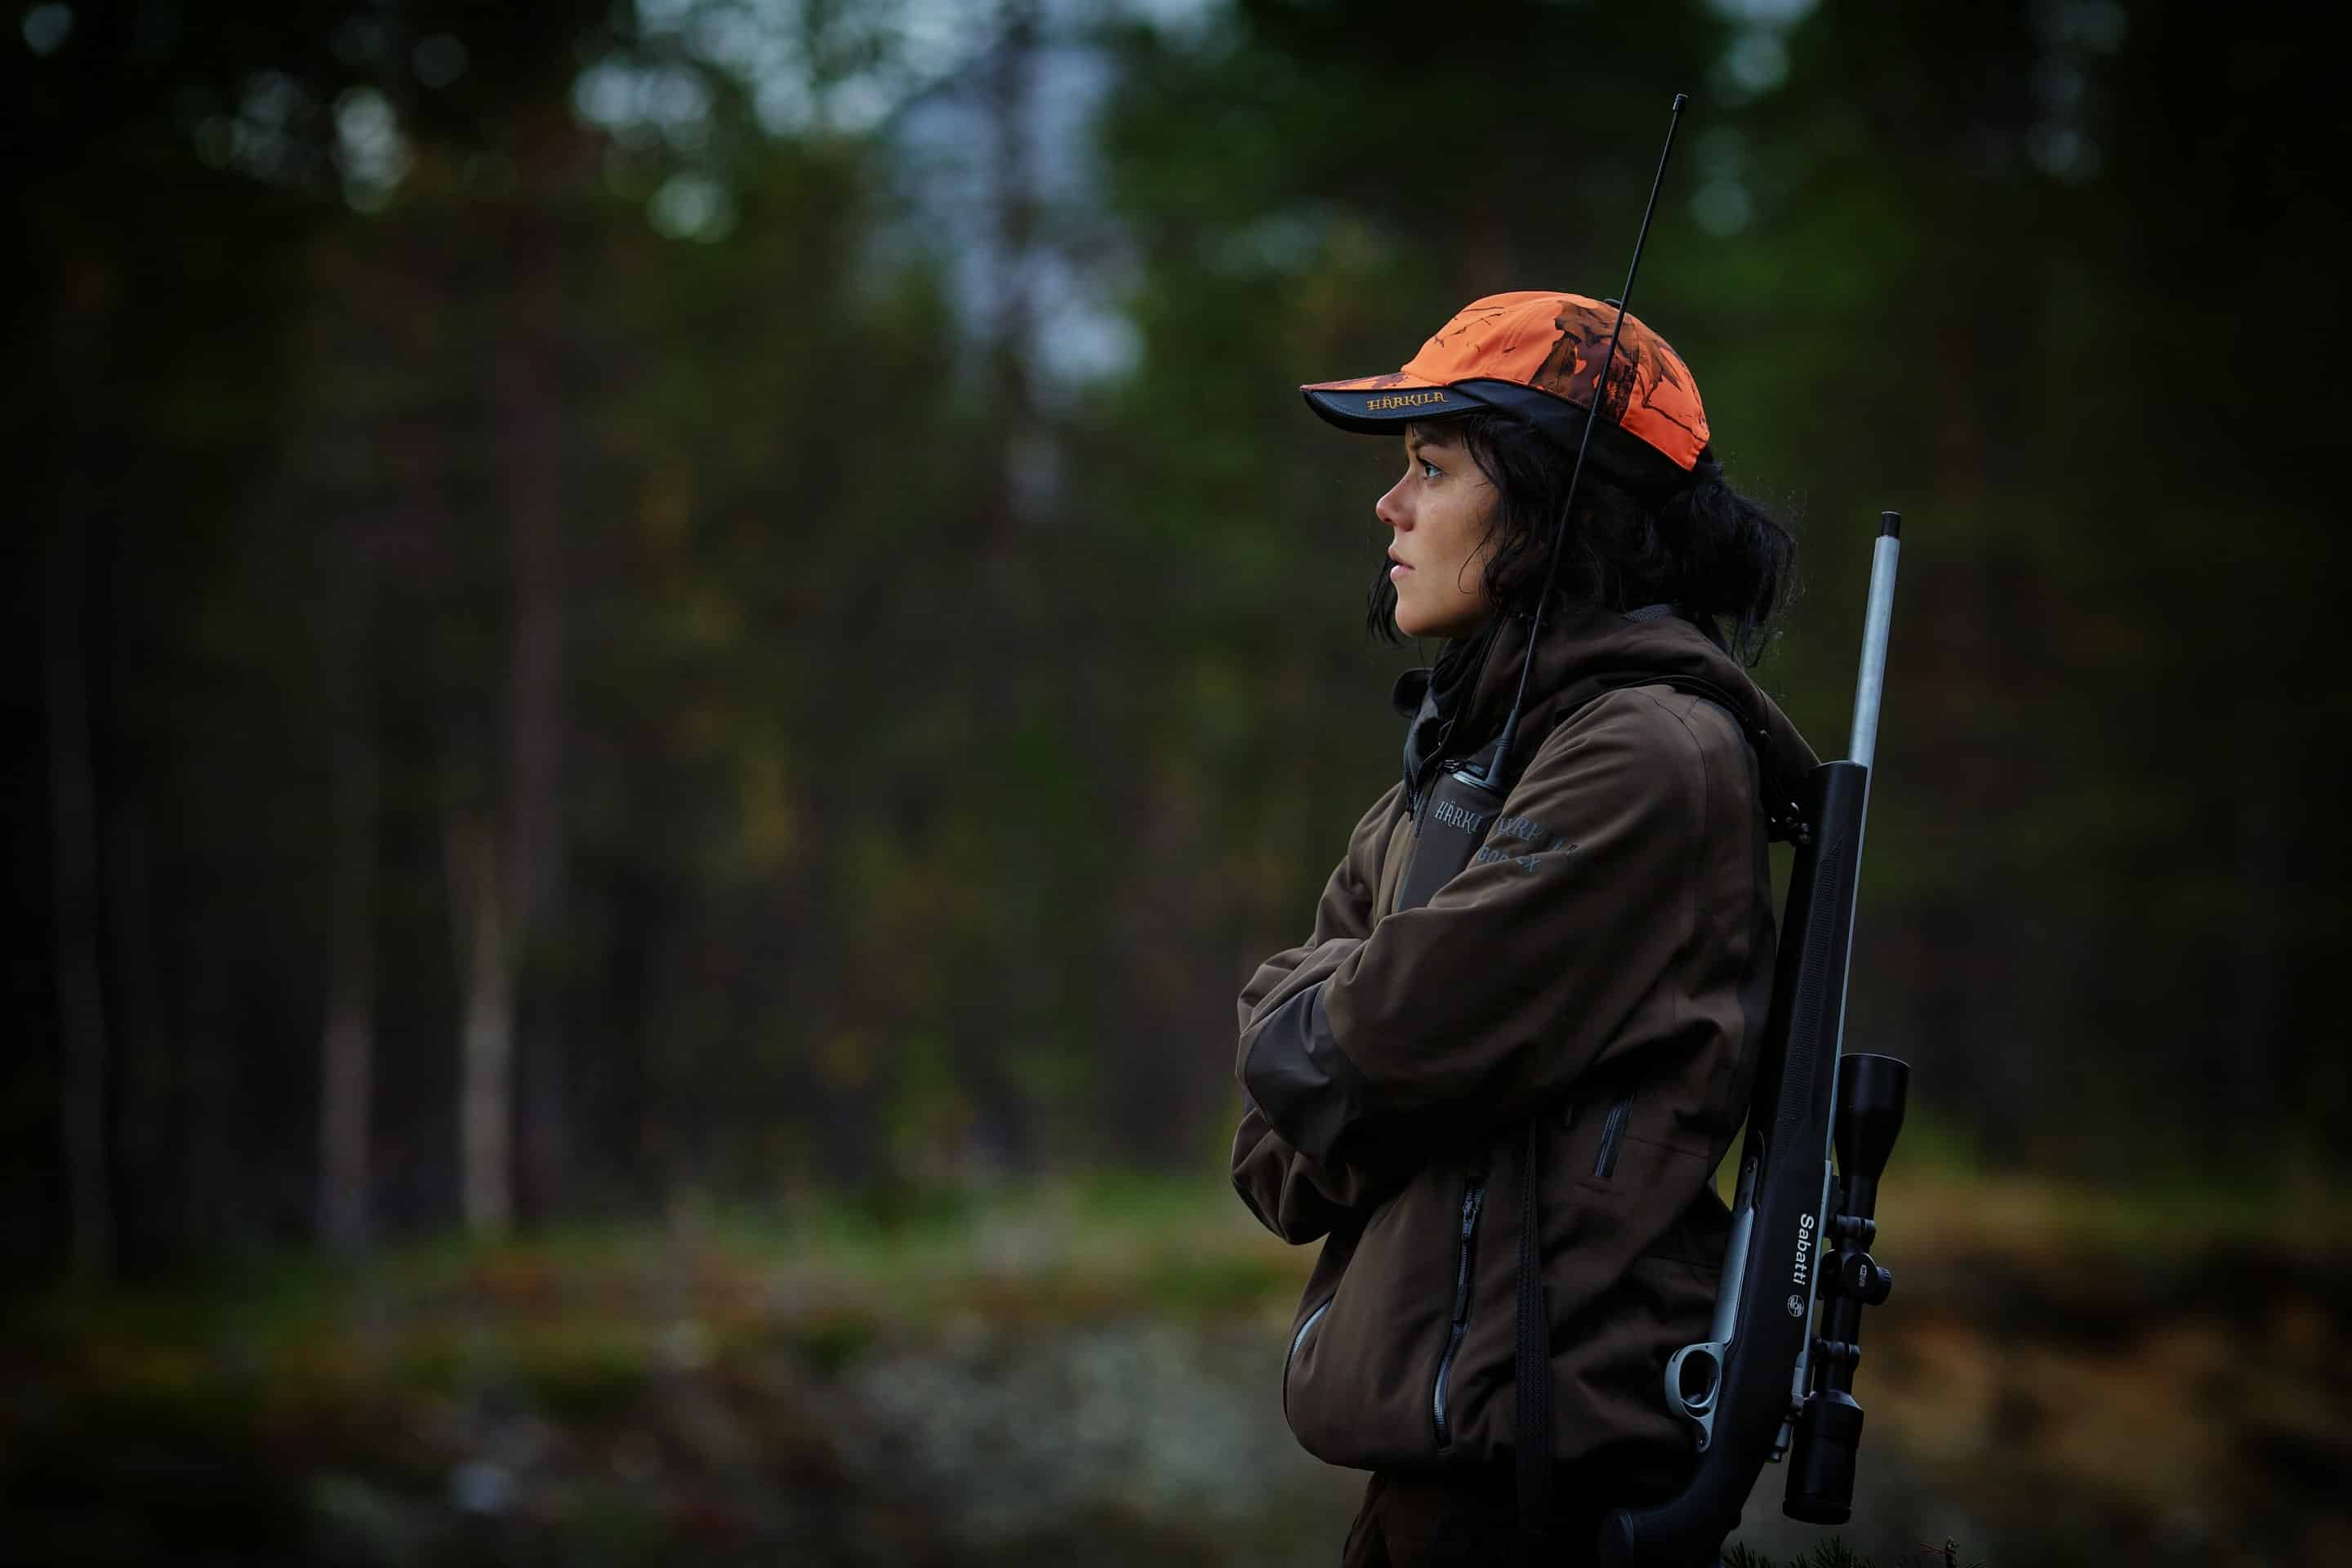 7 Best Hunting Rifle Reviews - Carefully Selected for Your Needs